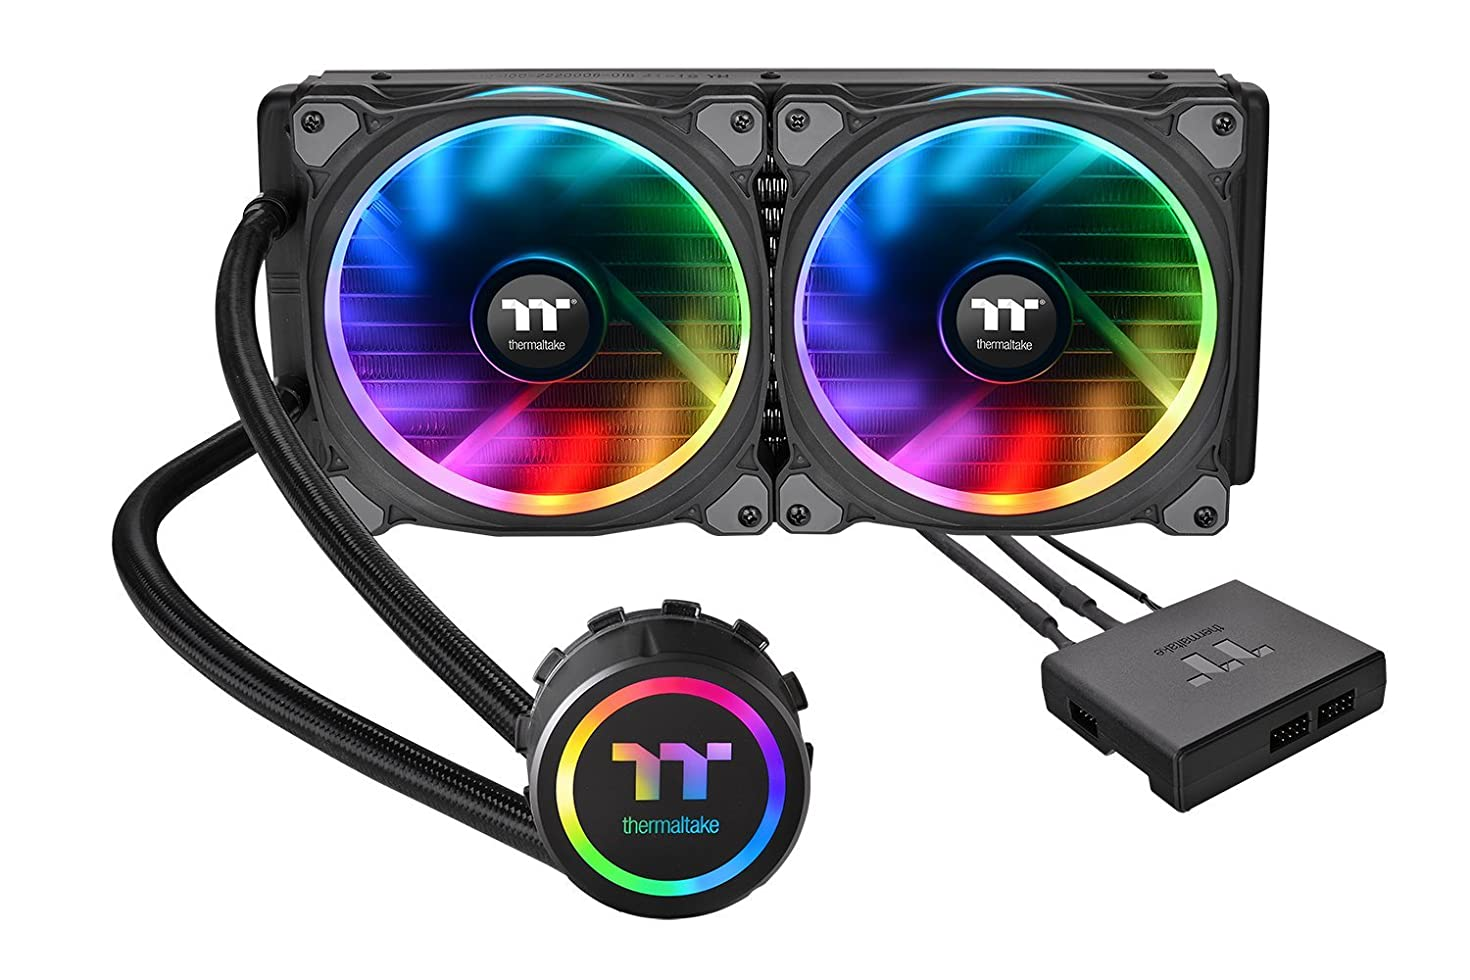 Thermaltake Floe Dual Riing RGB 280 TT Premium Edition PWM TR4 AM4 LGA2066 Ready AIO Liquid Cooling System 280mm High Efficiency Radiator CPU Cooler CL-W167-PL14SW-A